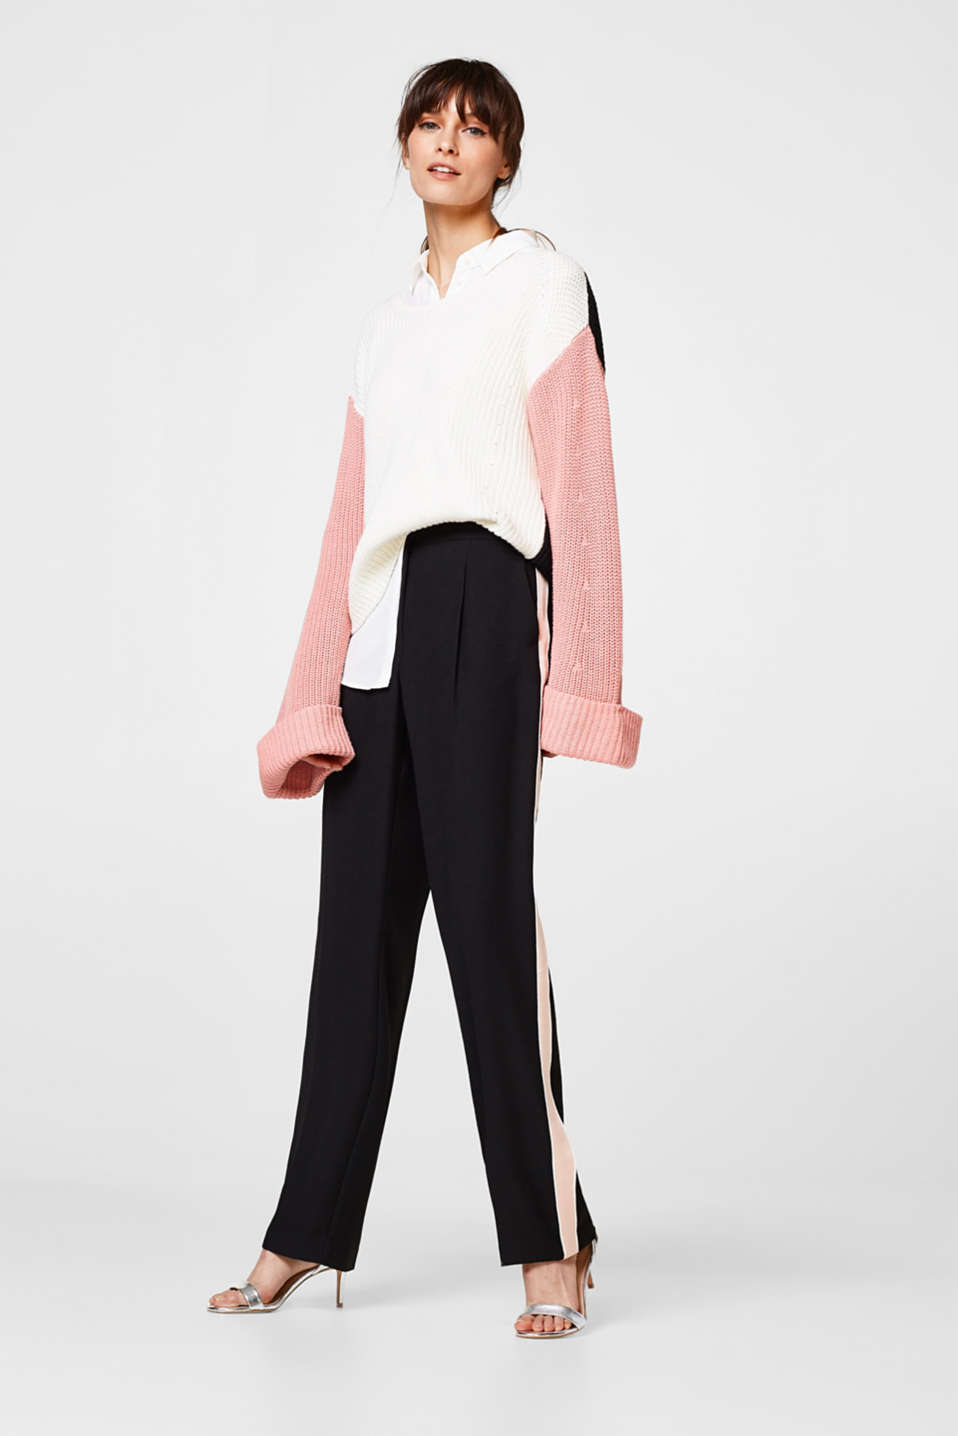 Esprit - Flowing trousers with tuxedo stripes